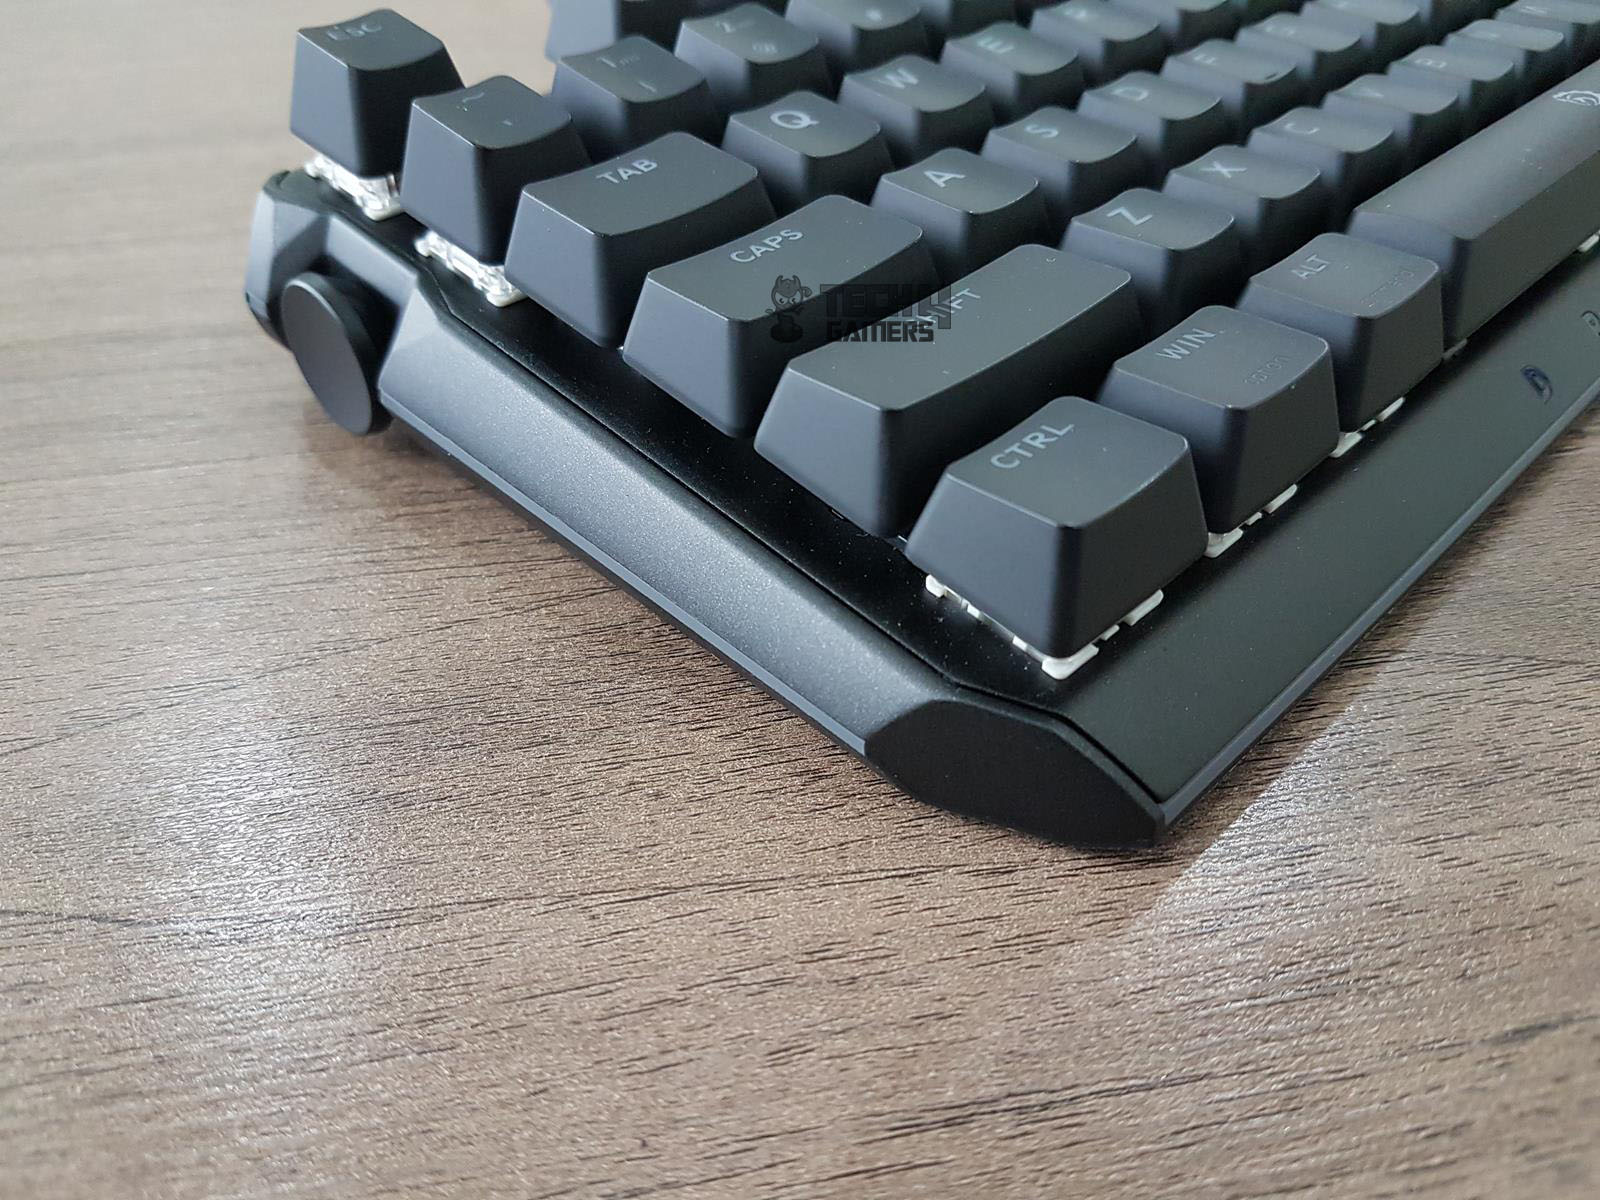 Drevo BladeMaster TE 87K Gaming Mechanical Keyboard Review